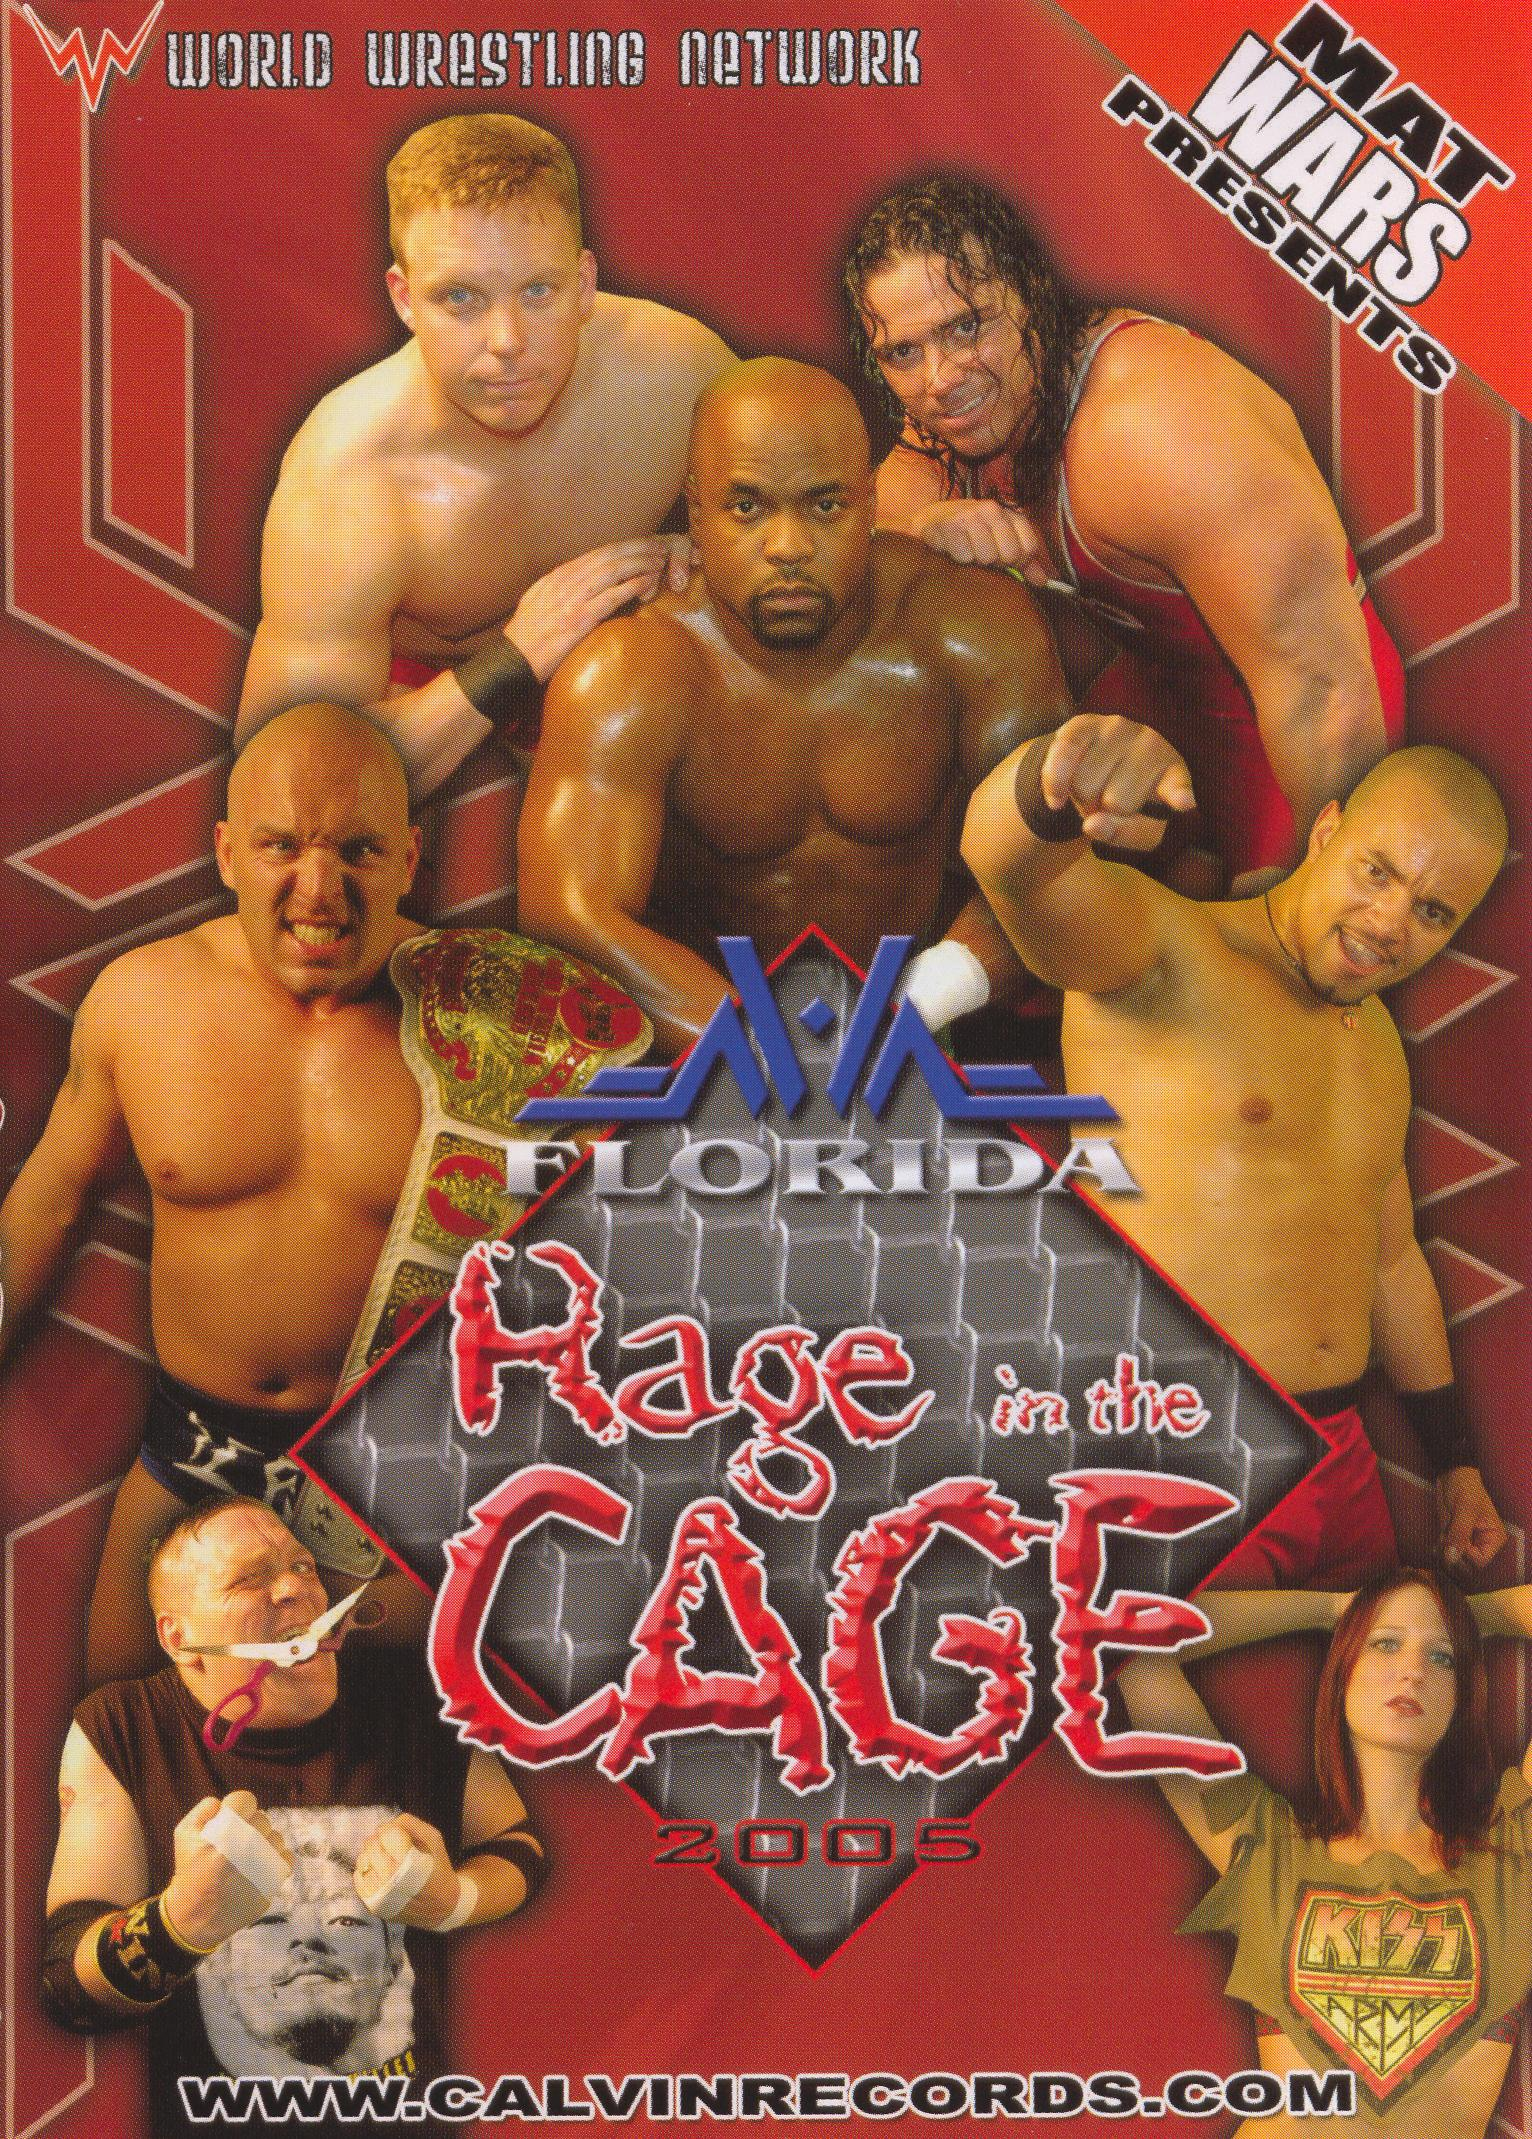 Mat Wars: Florida Rage in the Cage